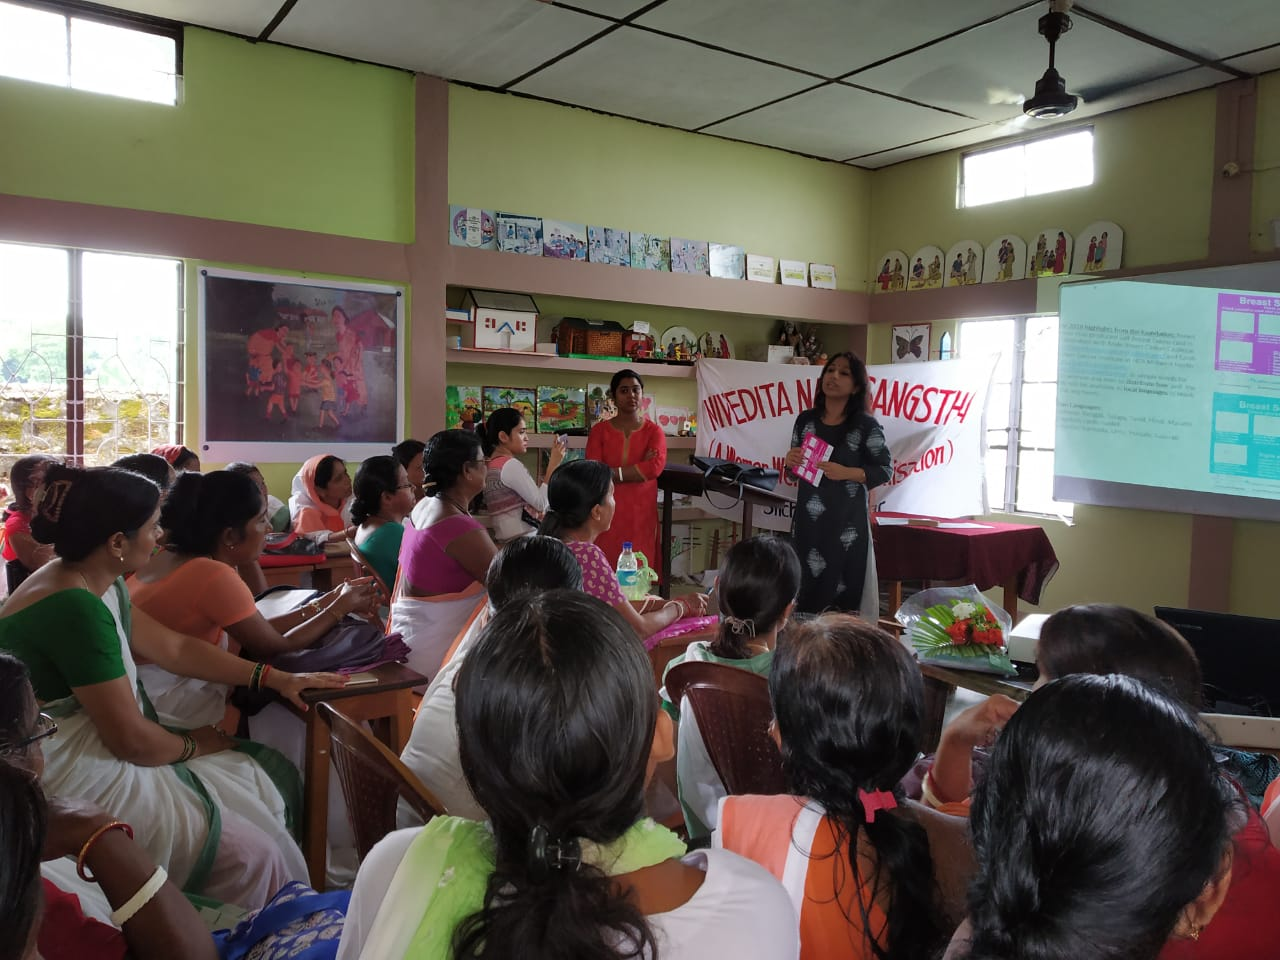 Breast Cancer awareness session emphasizing on early detection, breaking the taboo & shyness, knowledge about Breast health & Breast self examination protocol that can save lives...  The talk was recorded so that with new Anganwadi workers, the women are enriched about breast health and how they can save themselves by Breast self exam.